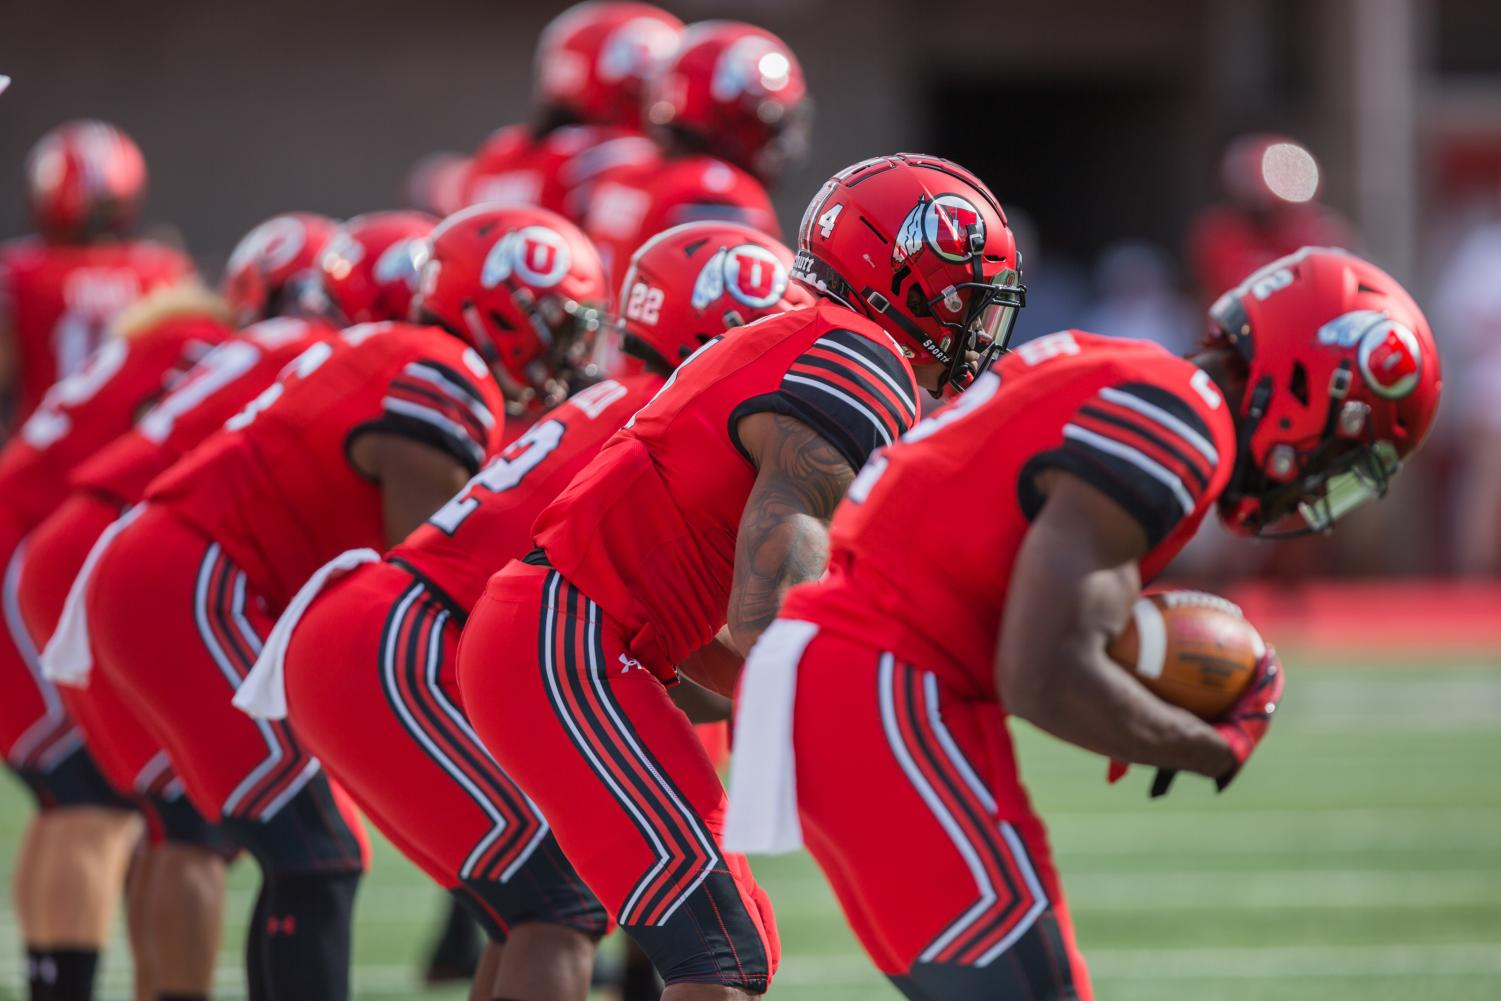 The University of Utah football team warms up before the NCAA football game vs. Weber State at Rice-Eccles Stadium in Salt Lake City, UT on Thursday August 30, 2018. (Photo by Curtis Lin | Daily Utah Chronicle)